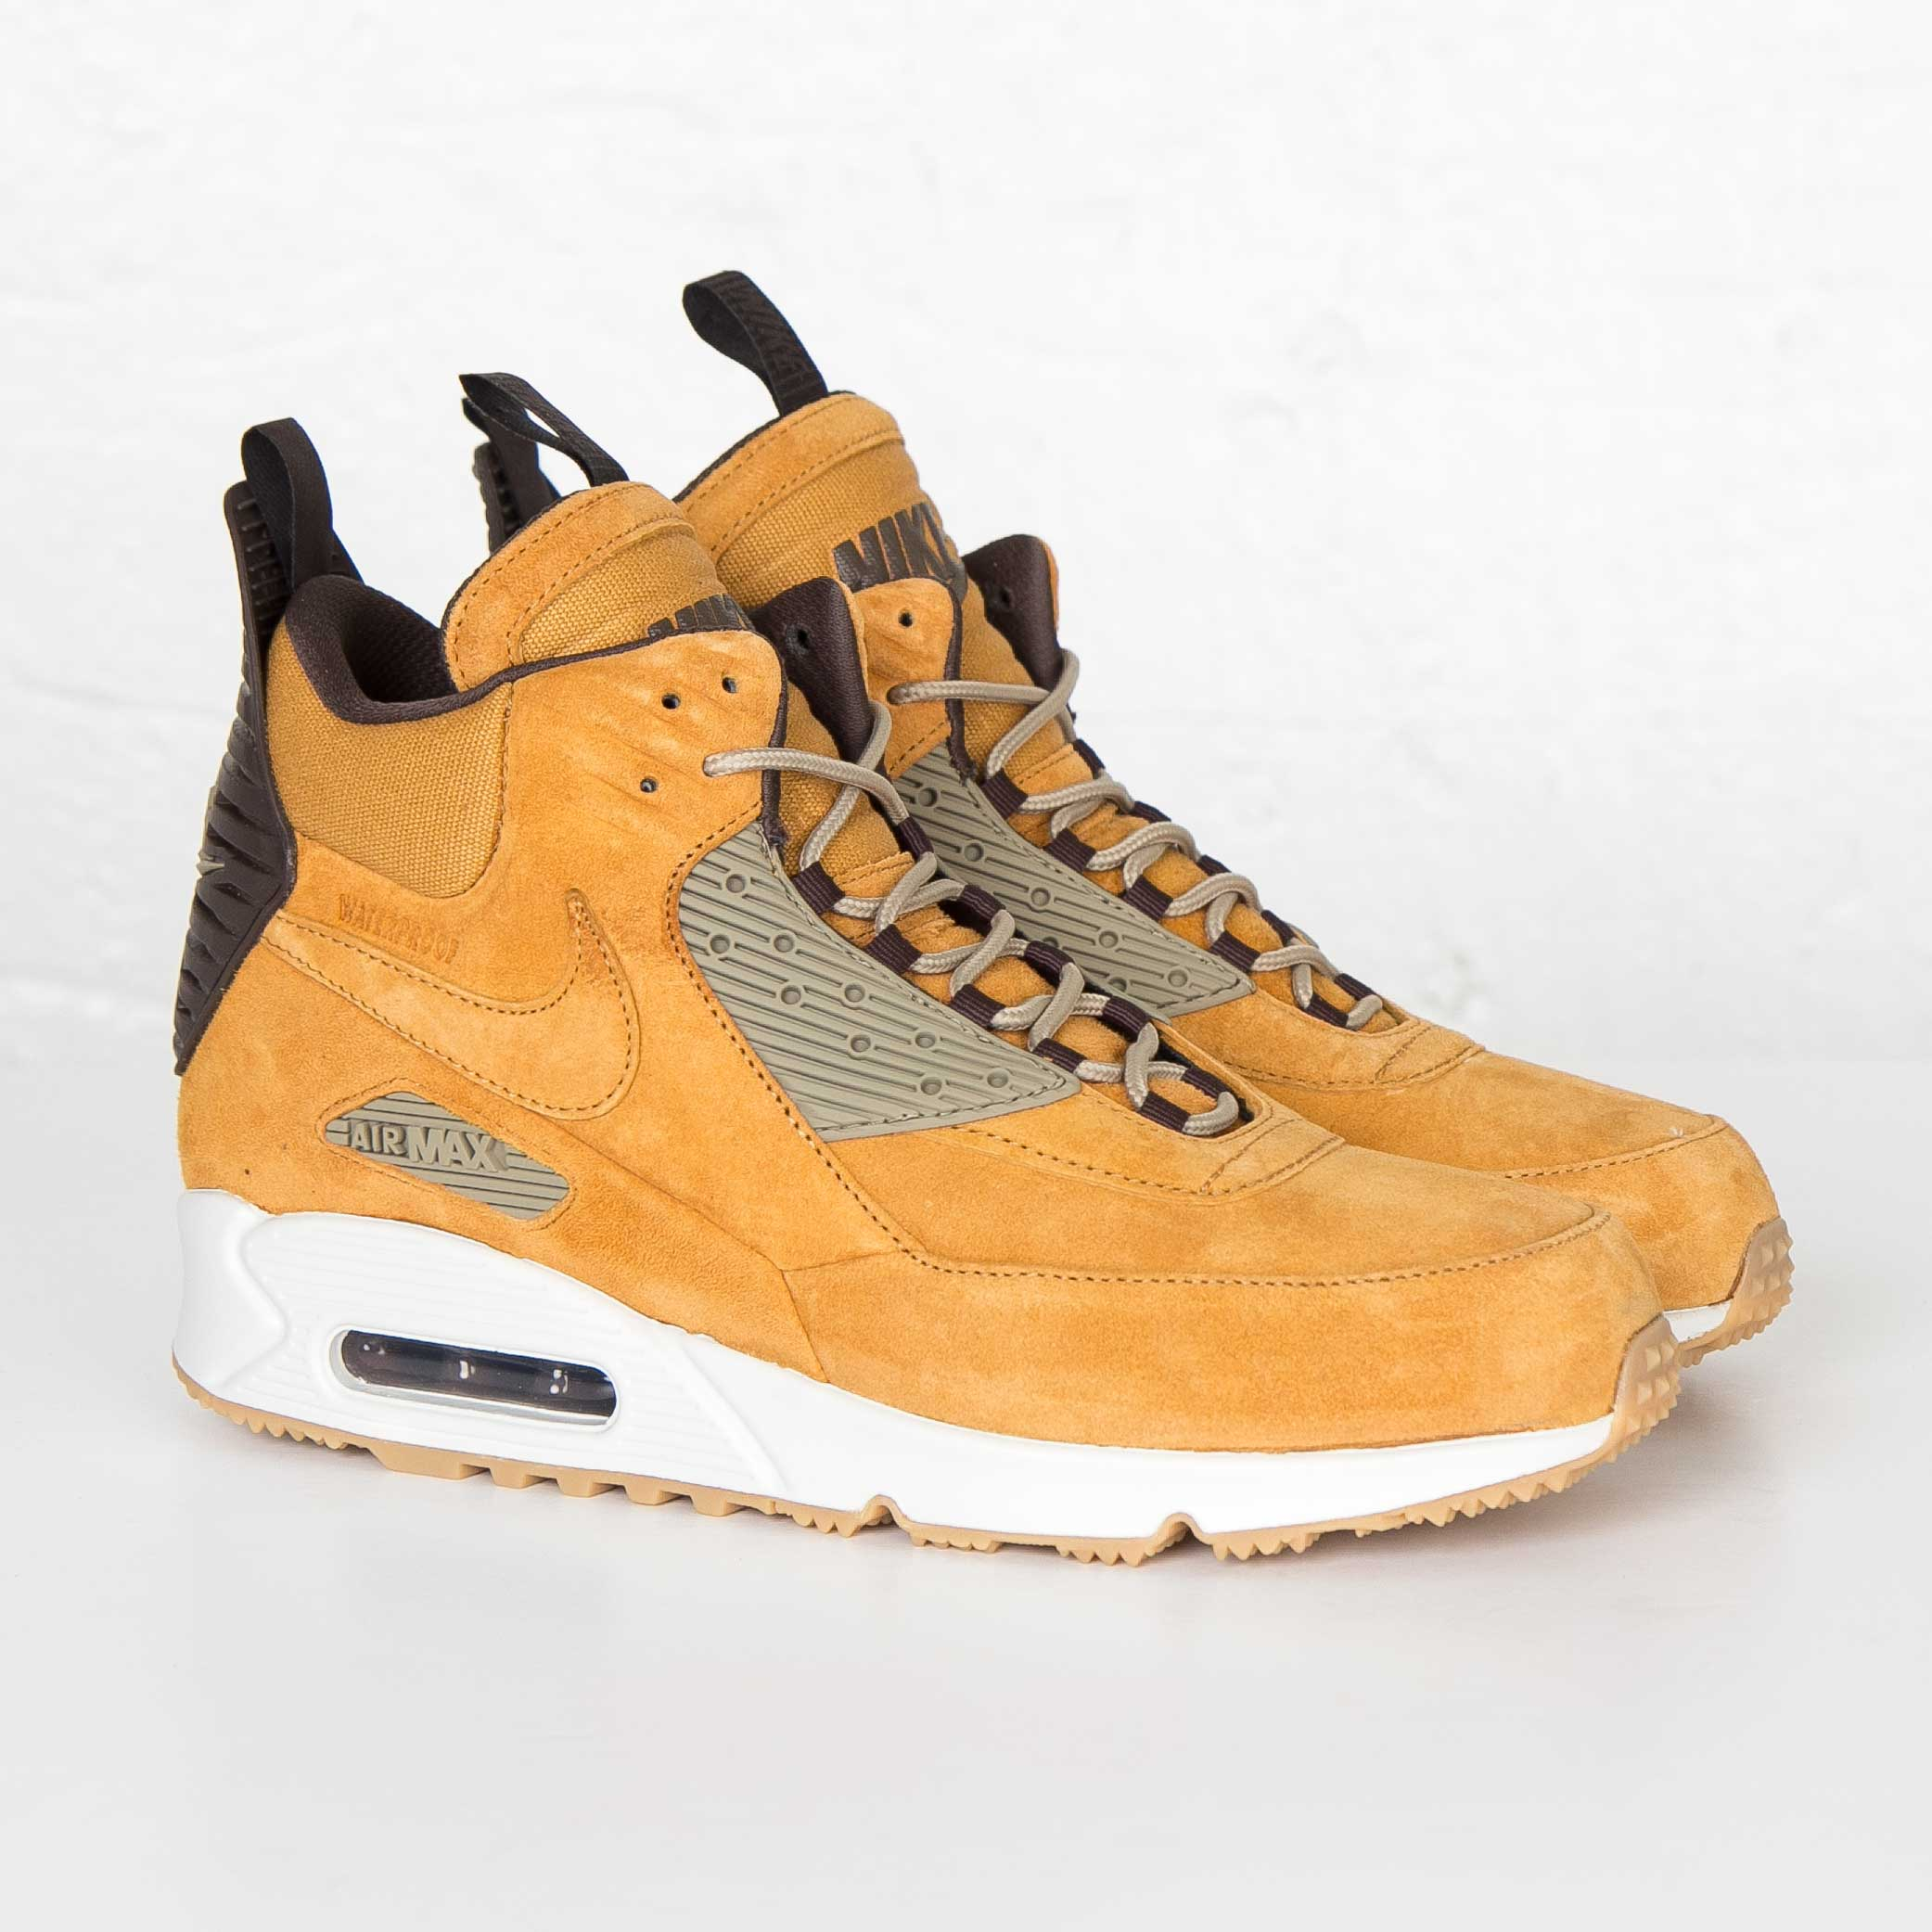 Nike Air Max 90 Sneakerboot Winter 684714 700